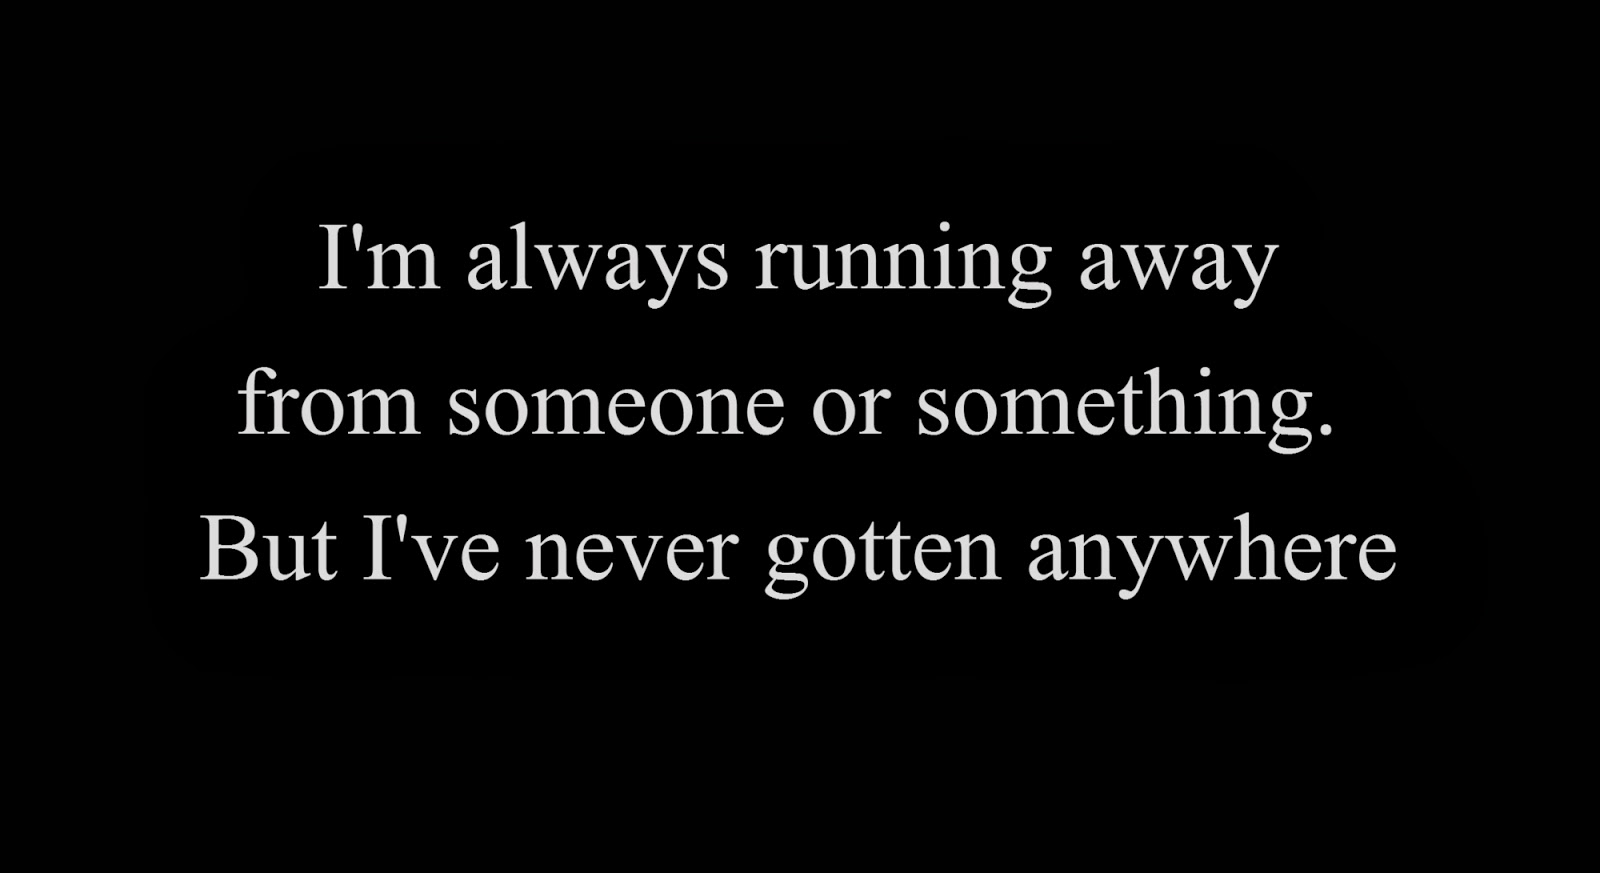 I'm always running away from someone or something. But I've never gotten anywhere